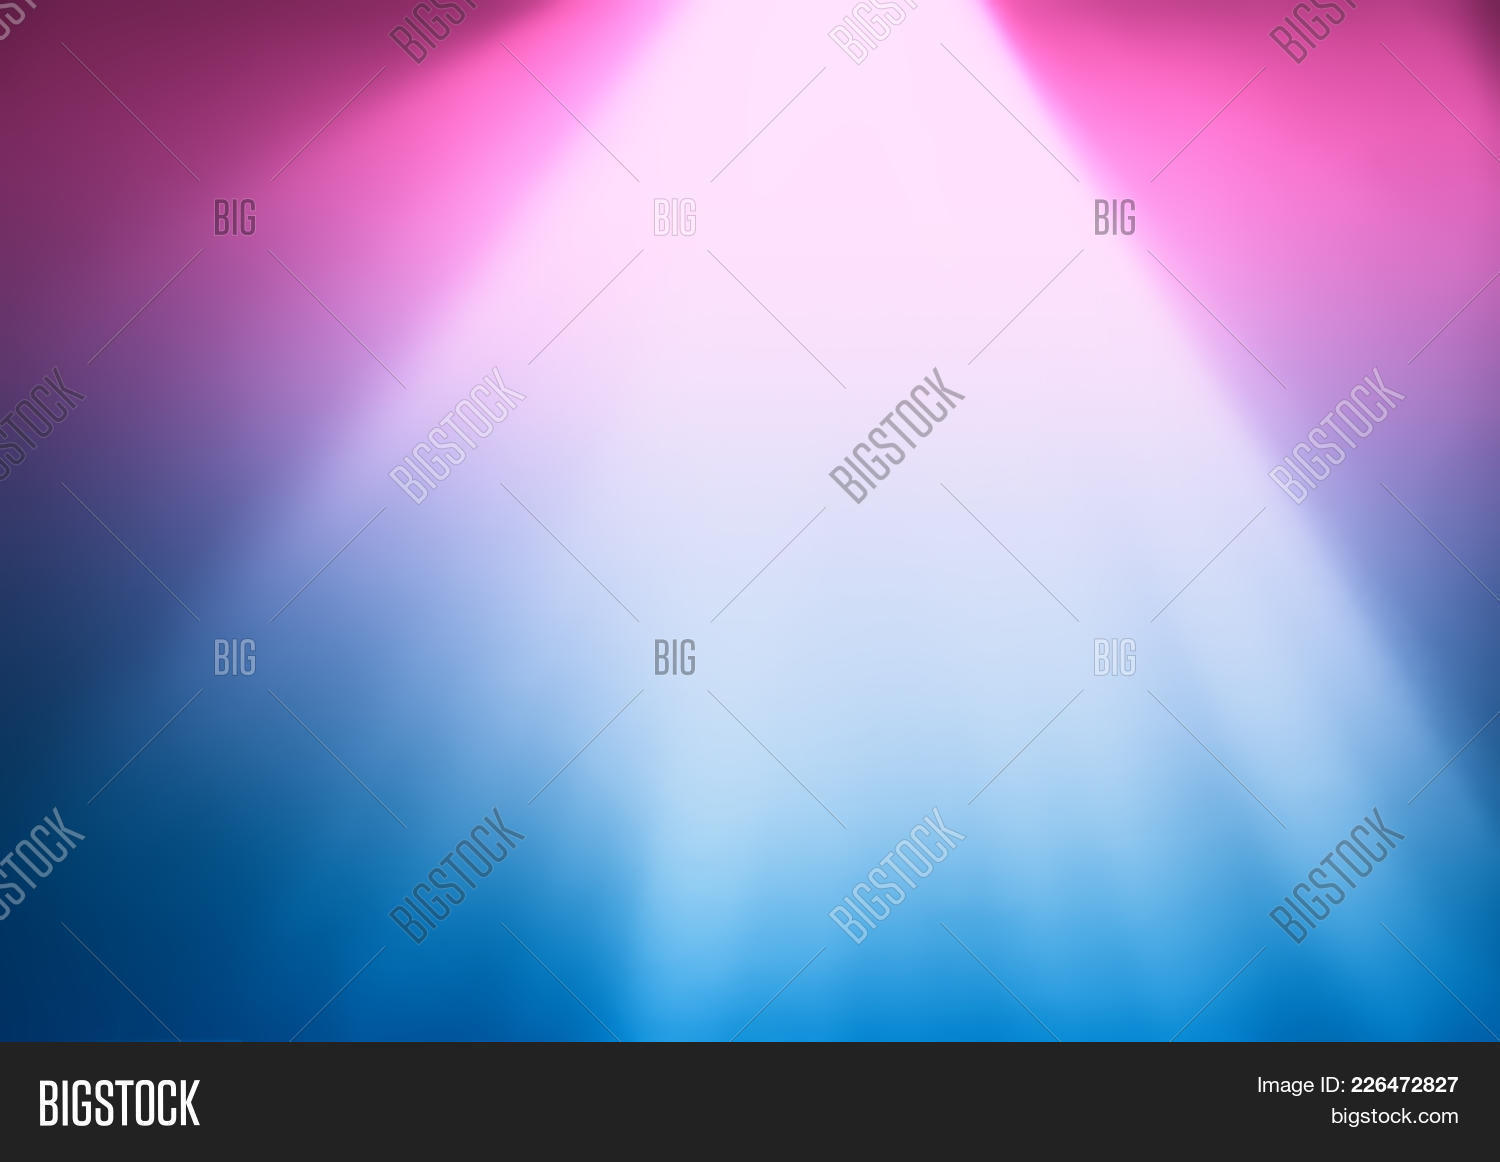 Dramatic Pink Powerpoint Template Dramatic Pink Powerpoint Background